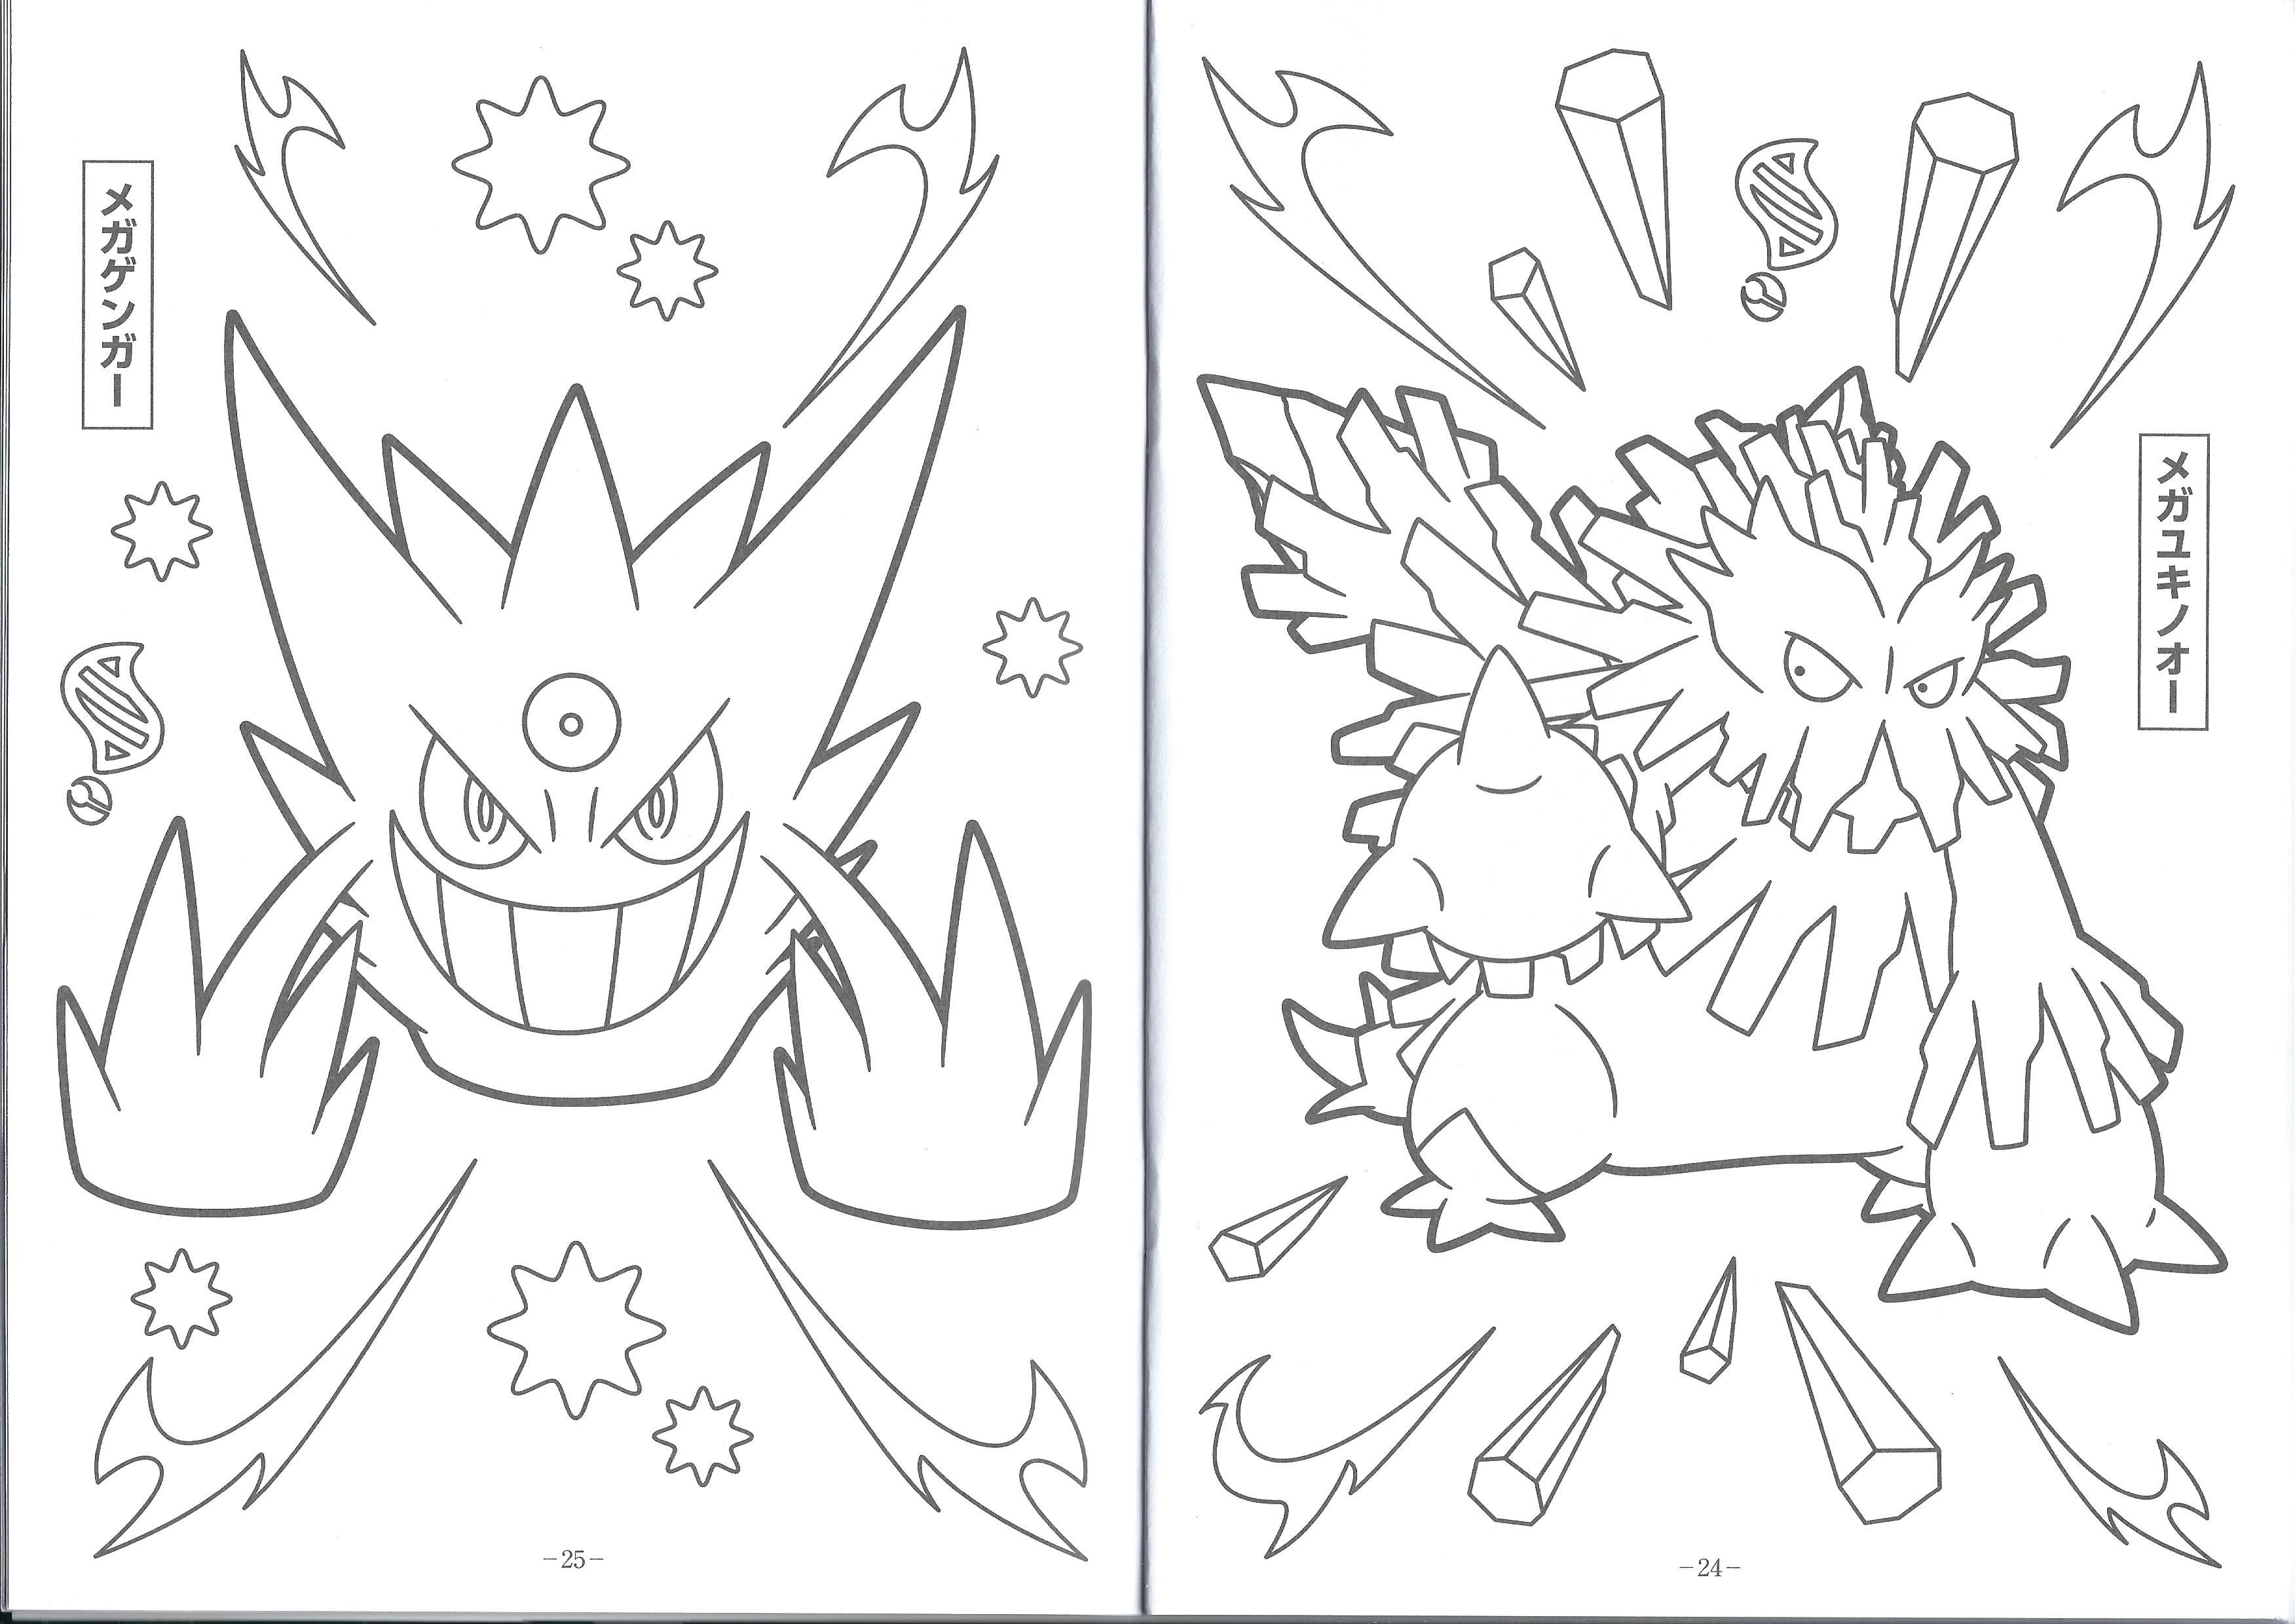 Pin By Leia Bess On Color Pokemon Evolutions Chains Evolved Forms